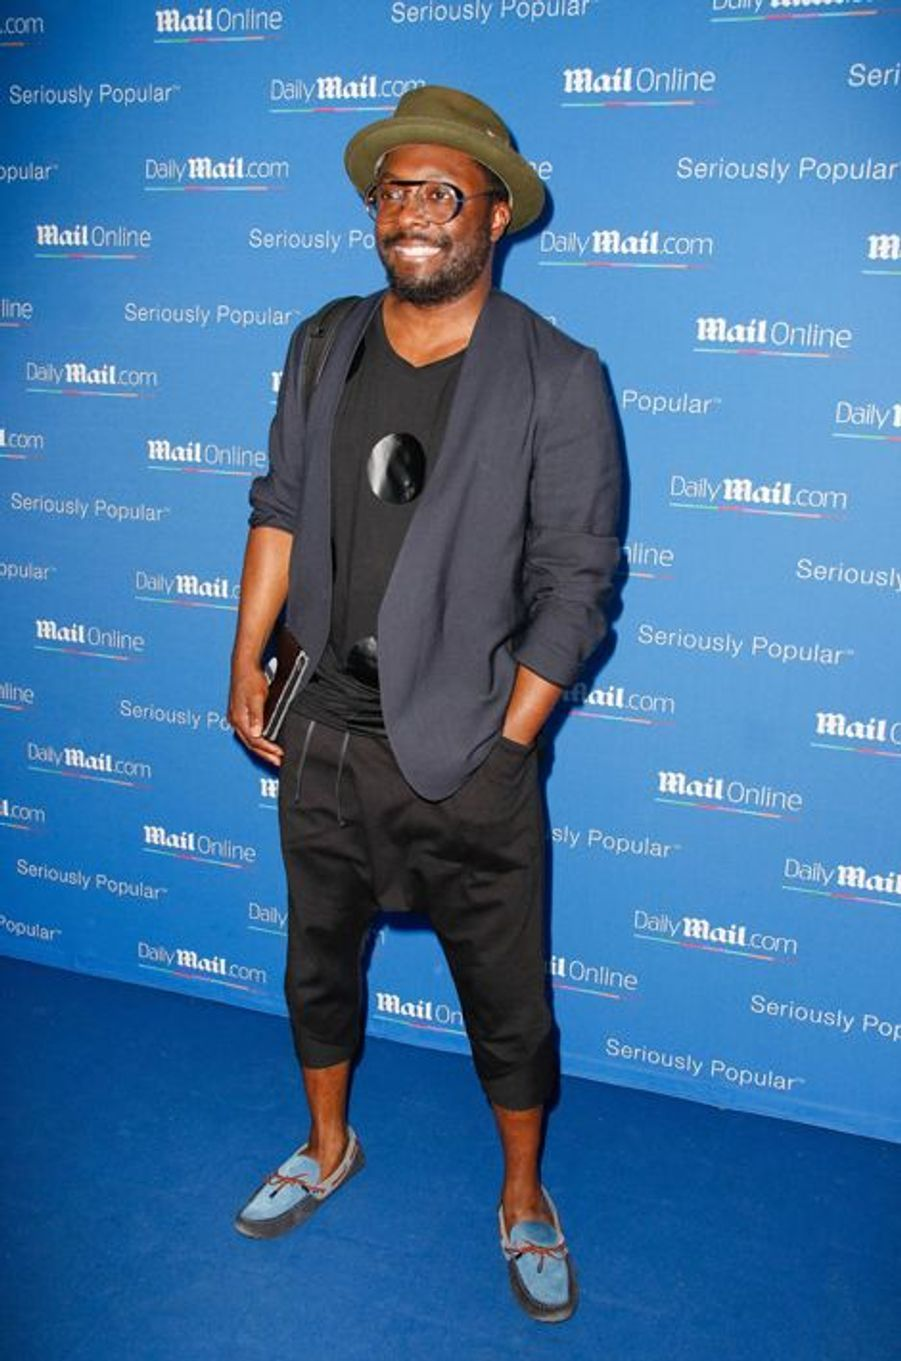 will.i.am à Cannes le 24 juin 2015